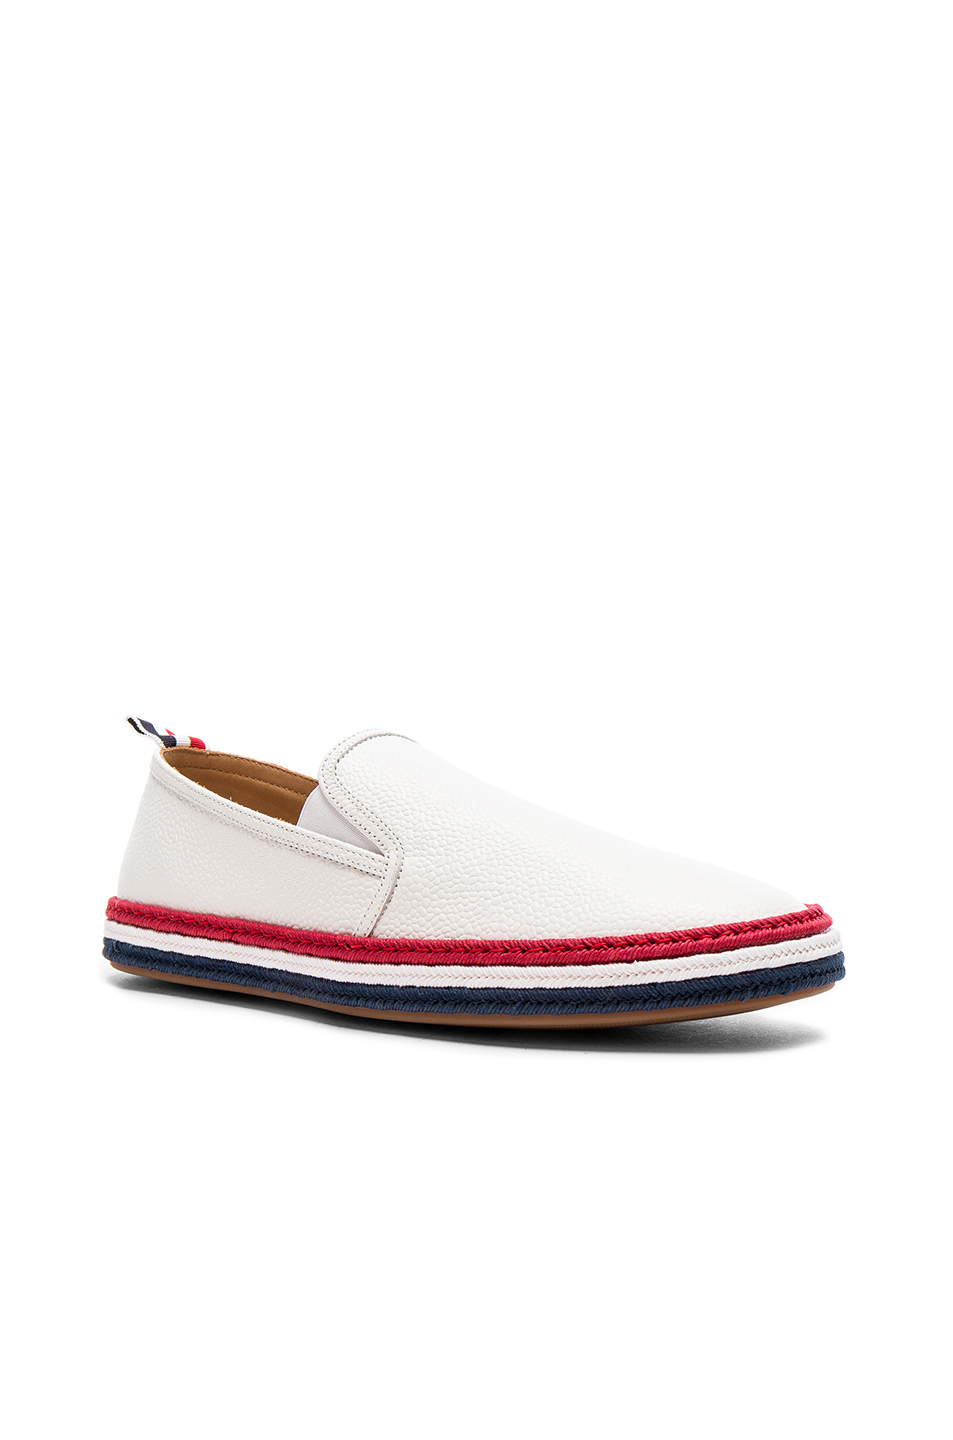 Thom Browne Pebble Grain Leather Espadrilles in White